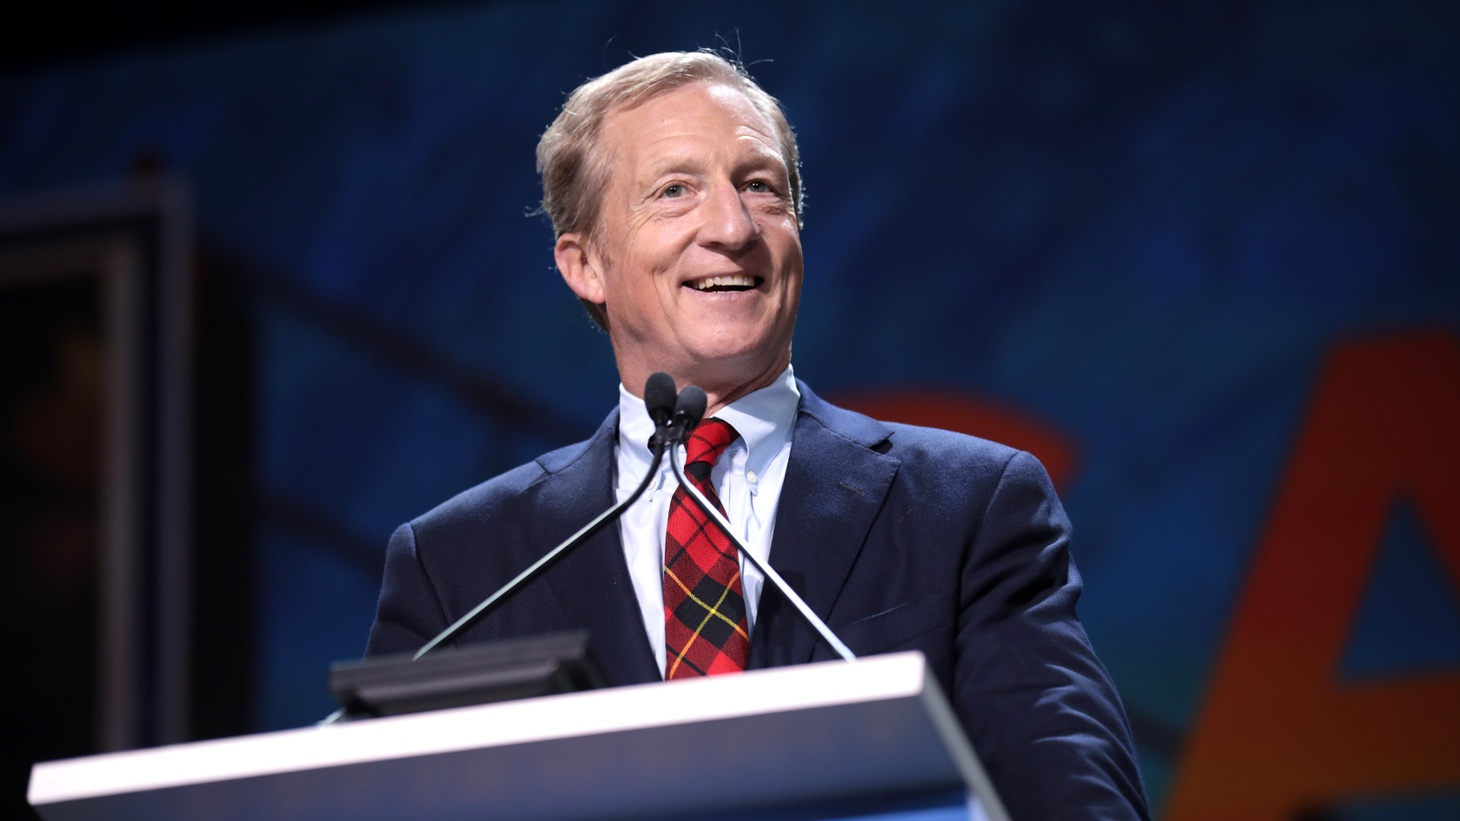 Tom Steyer speaking at the 2019 California Democratic Party State Convention at the George R. Moscone Convention Center in San Francisco, California.